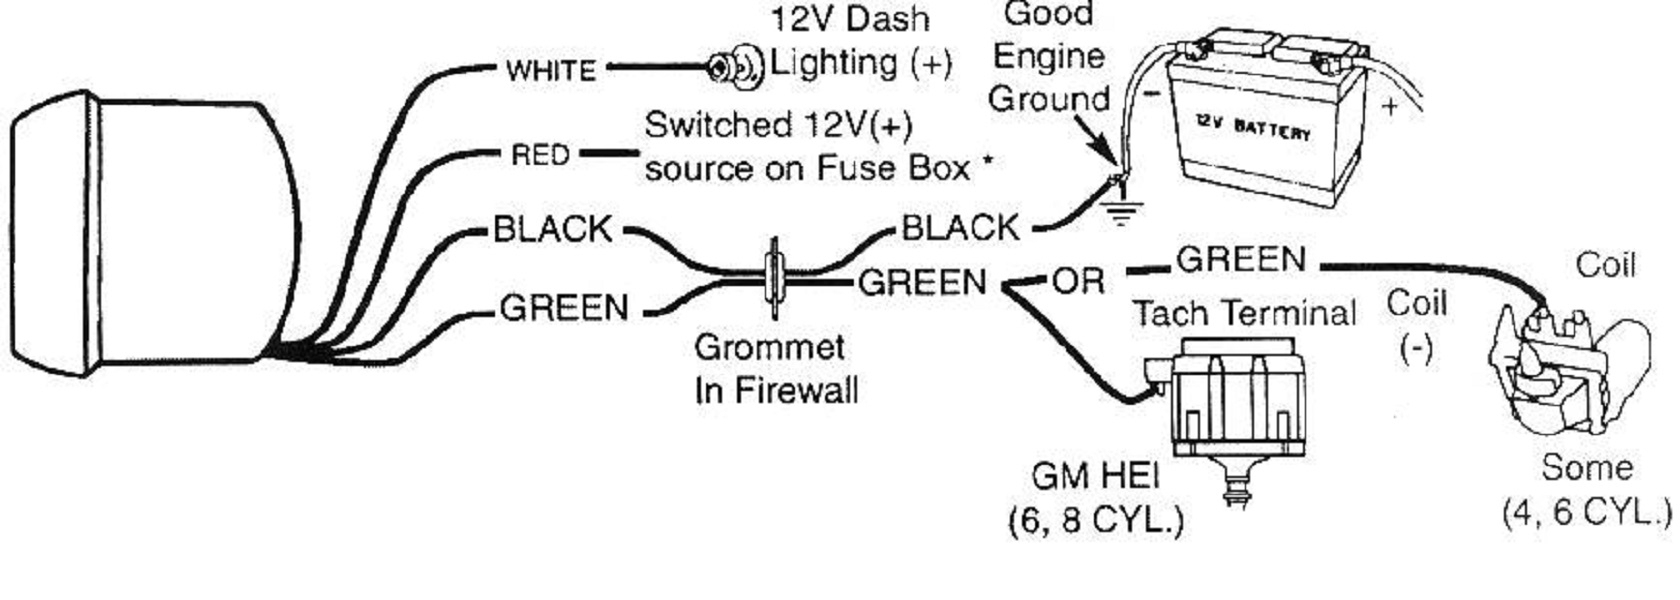 Sunpro Tach Wiring - Data Wiring Diagram Site - Sunpro Tach Wiring Diagram